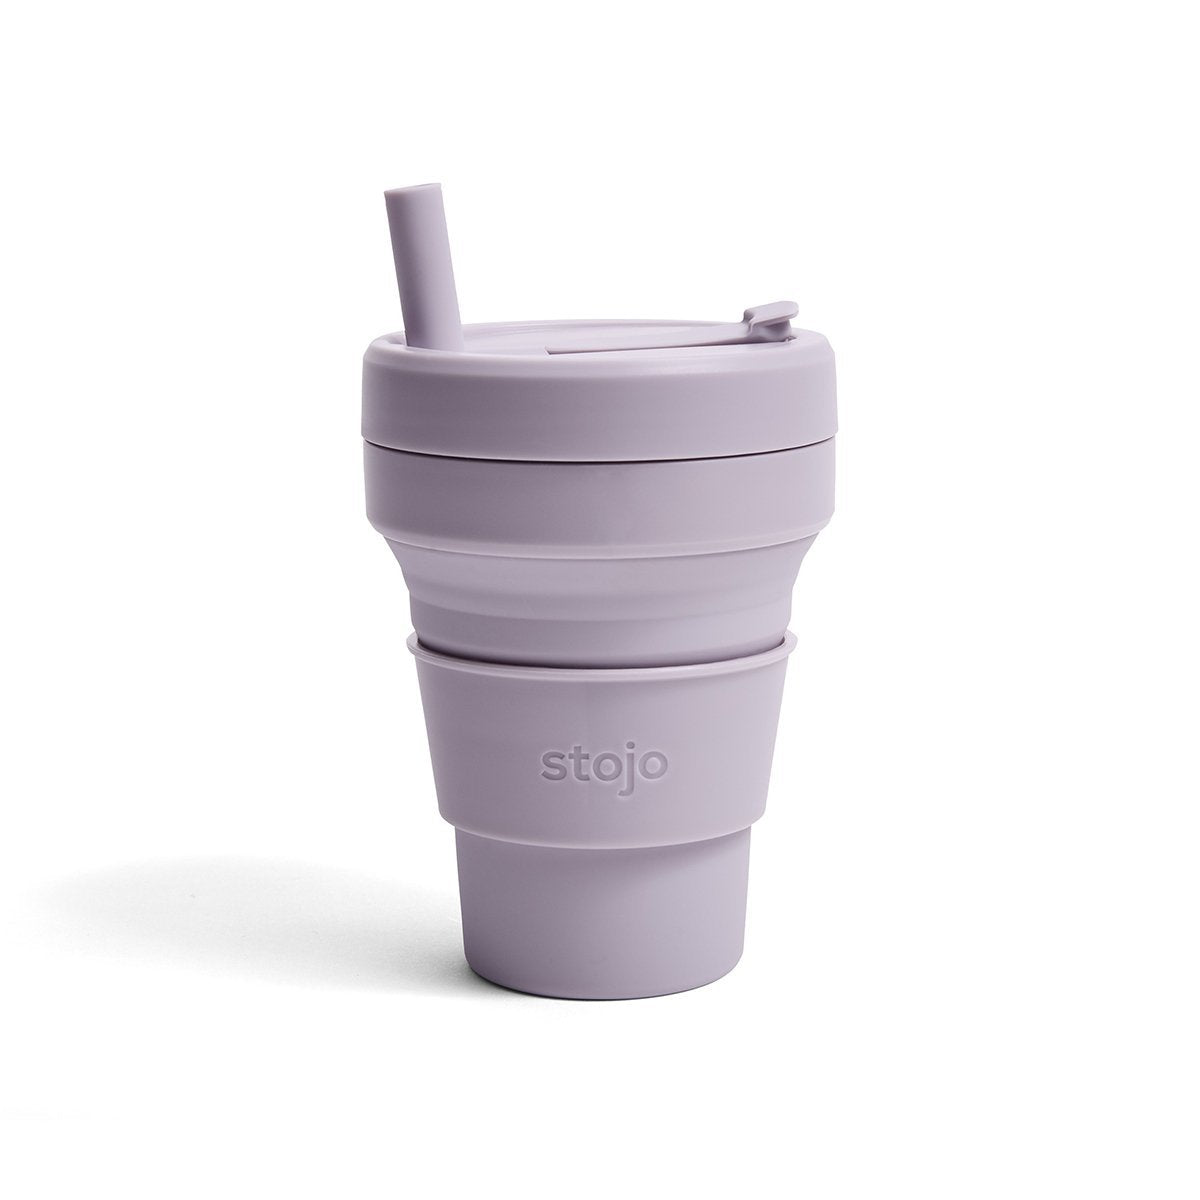 Stojo: 16 oz. Collapsible Cup in Lilac